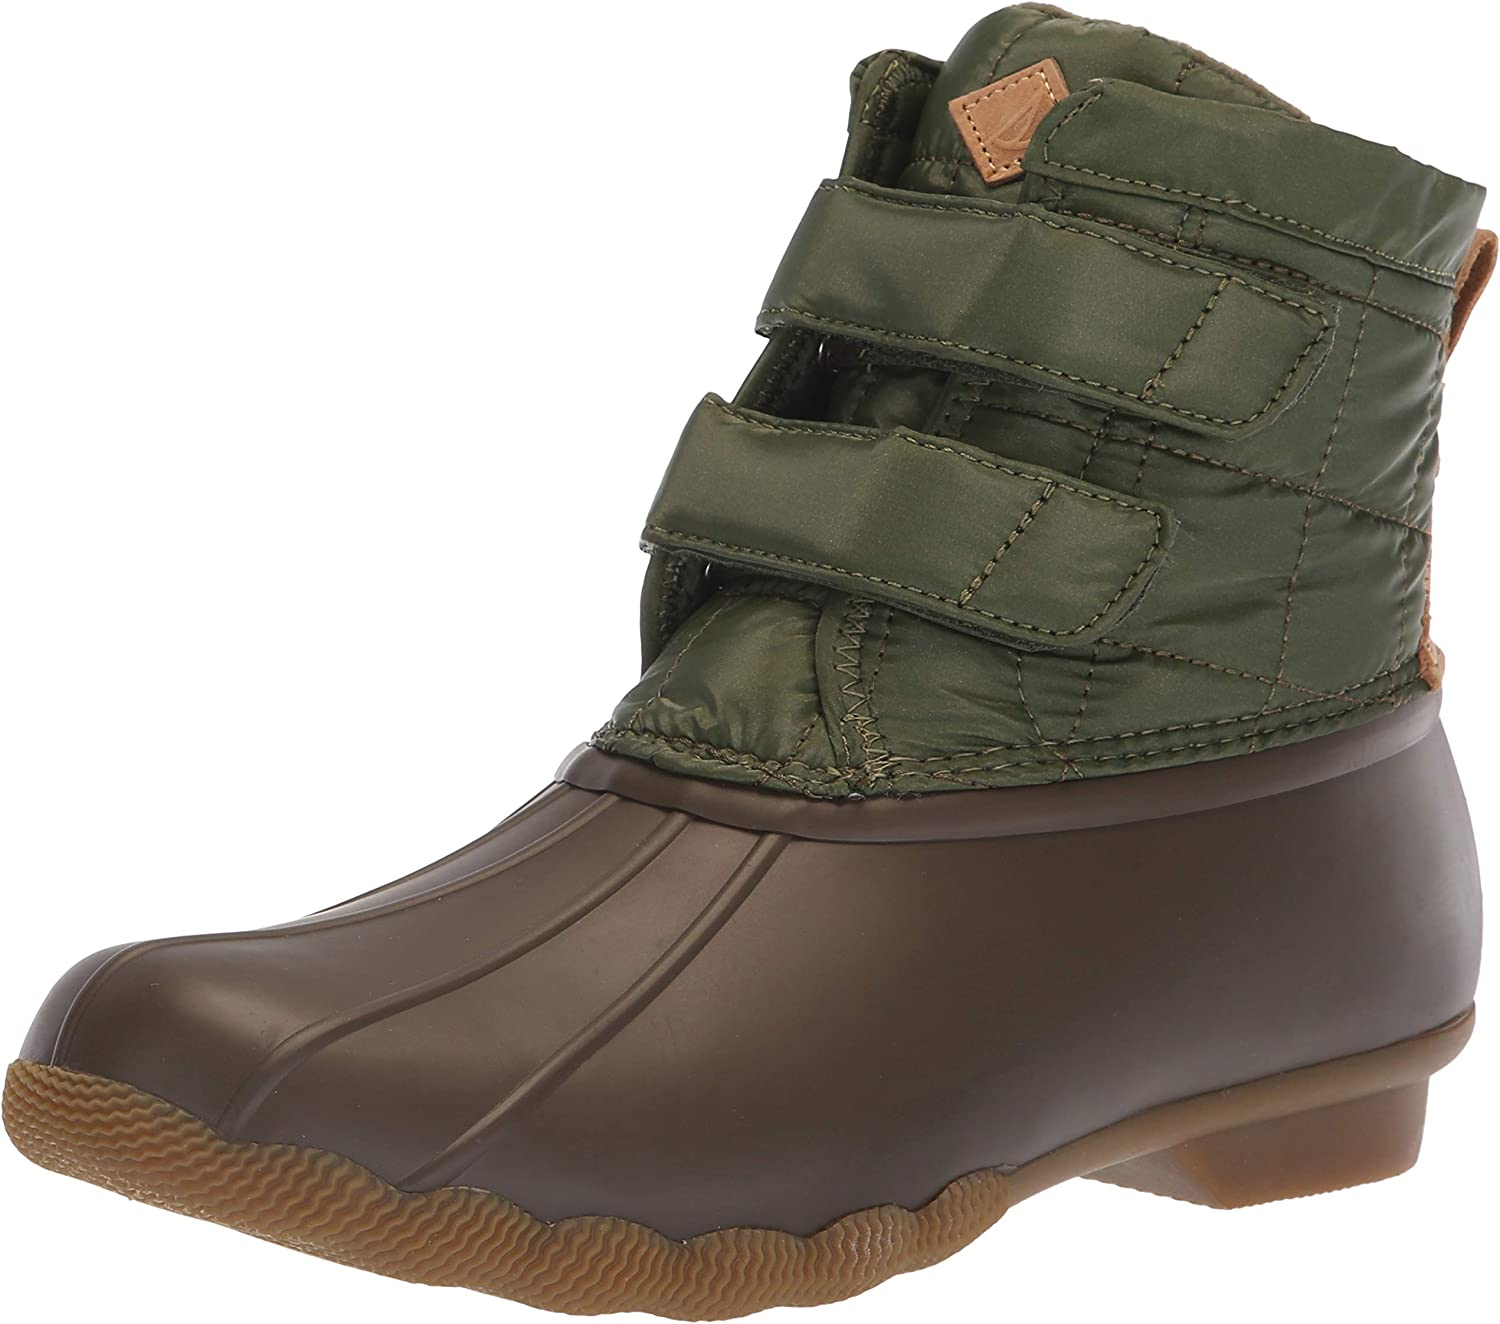 Sperry Women's Saltwater Jetty Snow Boots